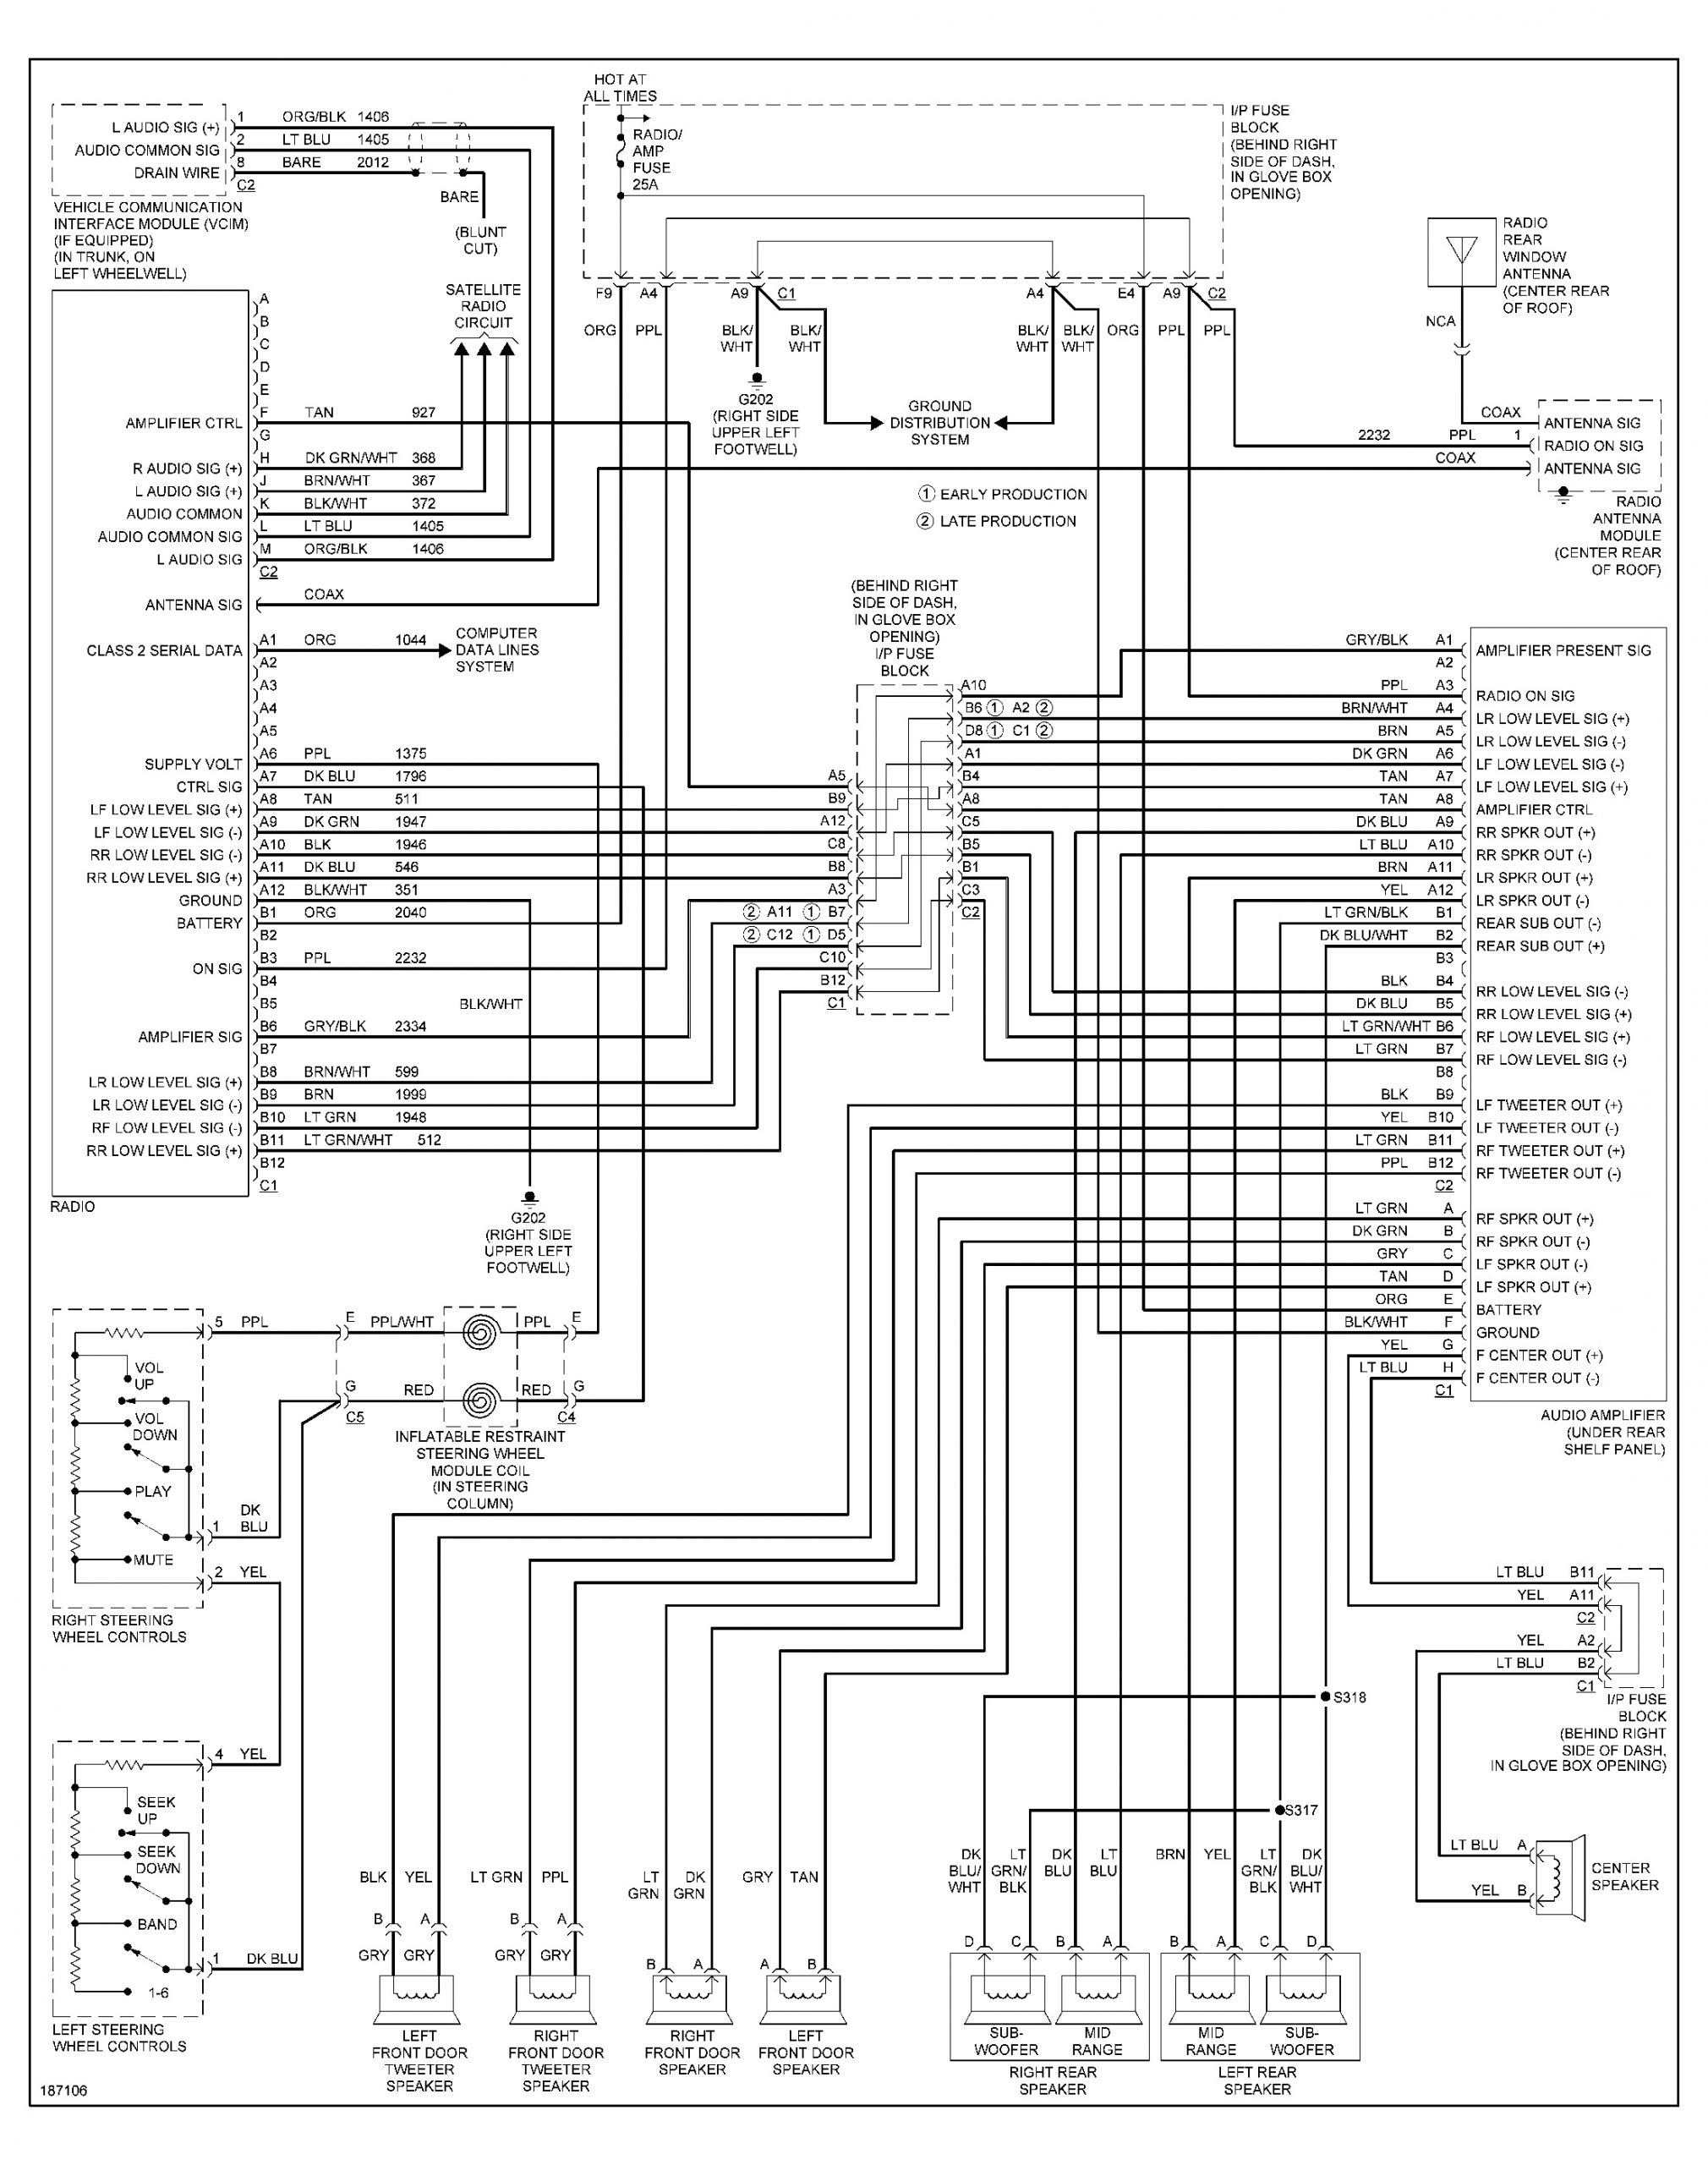 2001 pontiac grand prix abs wiring diagram 2004 for 2007 g6 on 2007 pontiac g6 wiring diagram within 2007 pontiac g6 wiring diagram jpg